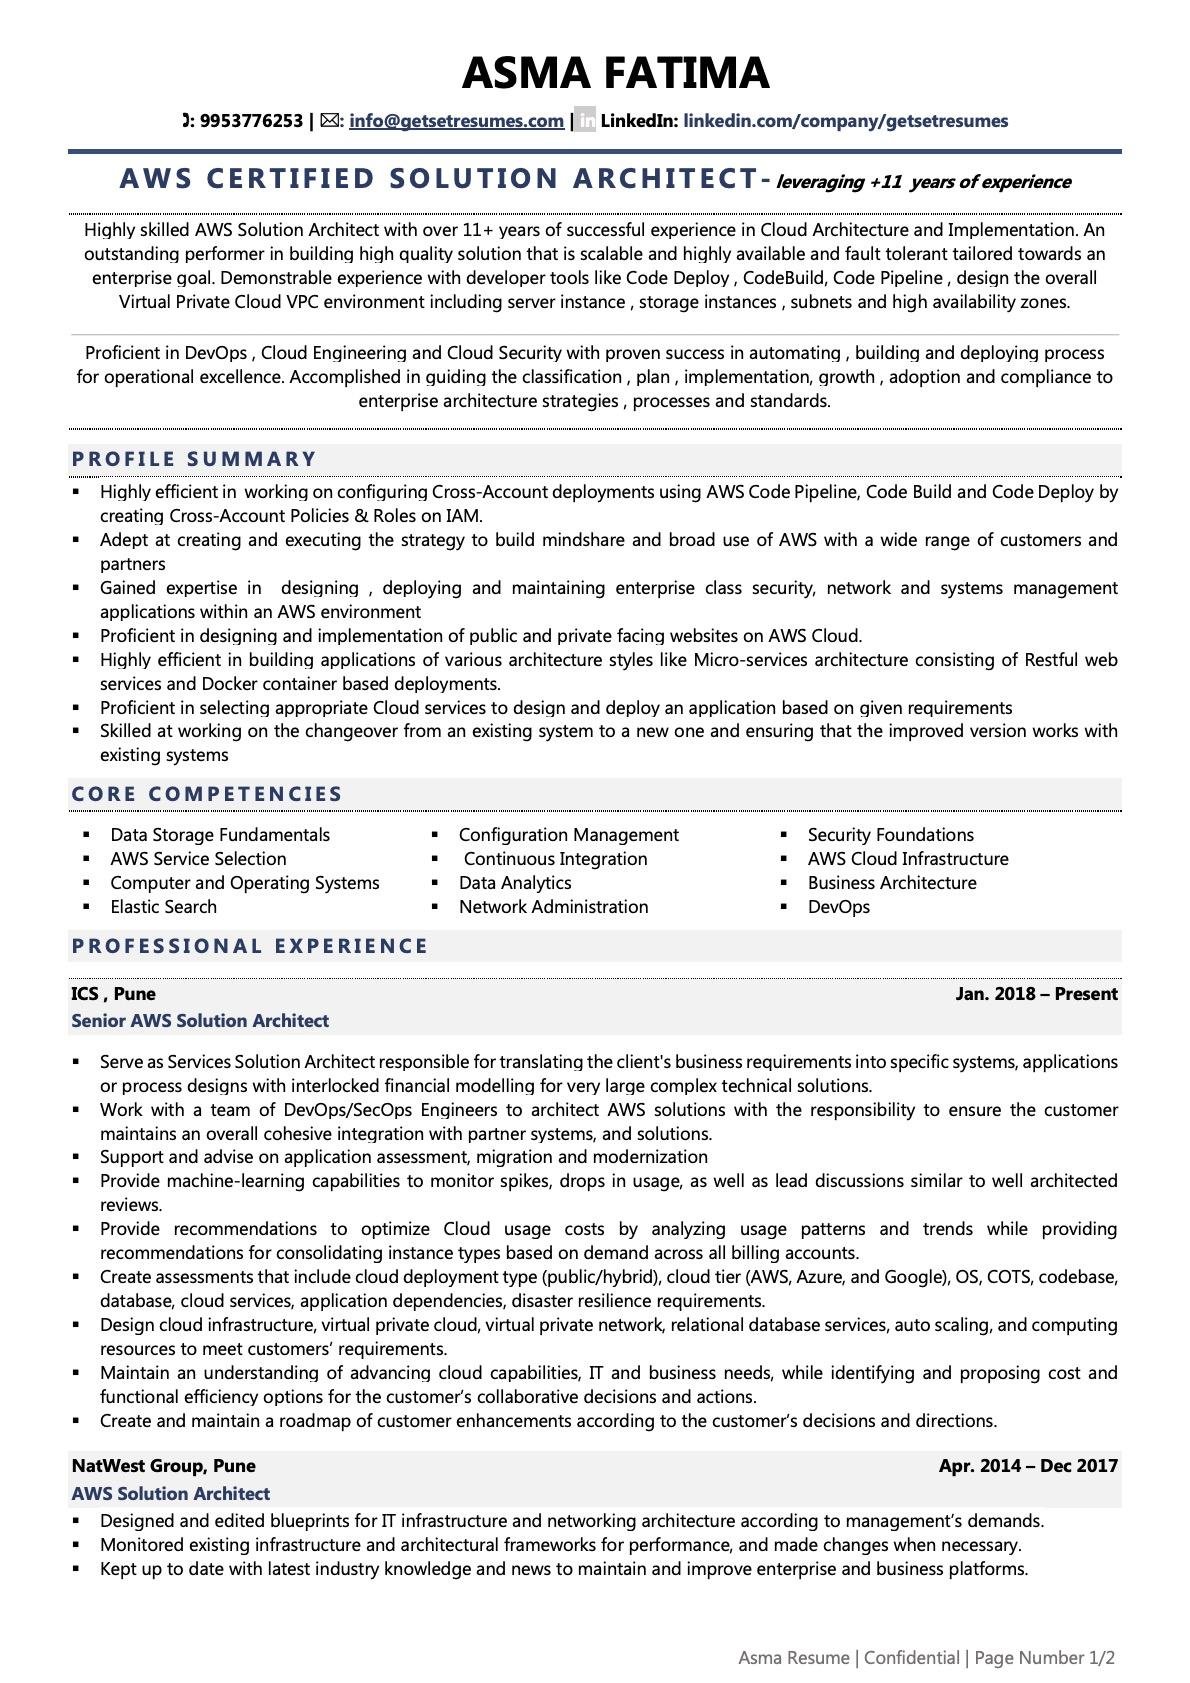 AWS Solution Architect - Resume Example & Template